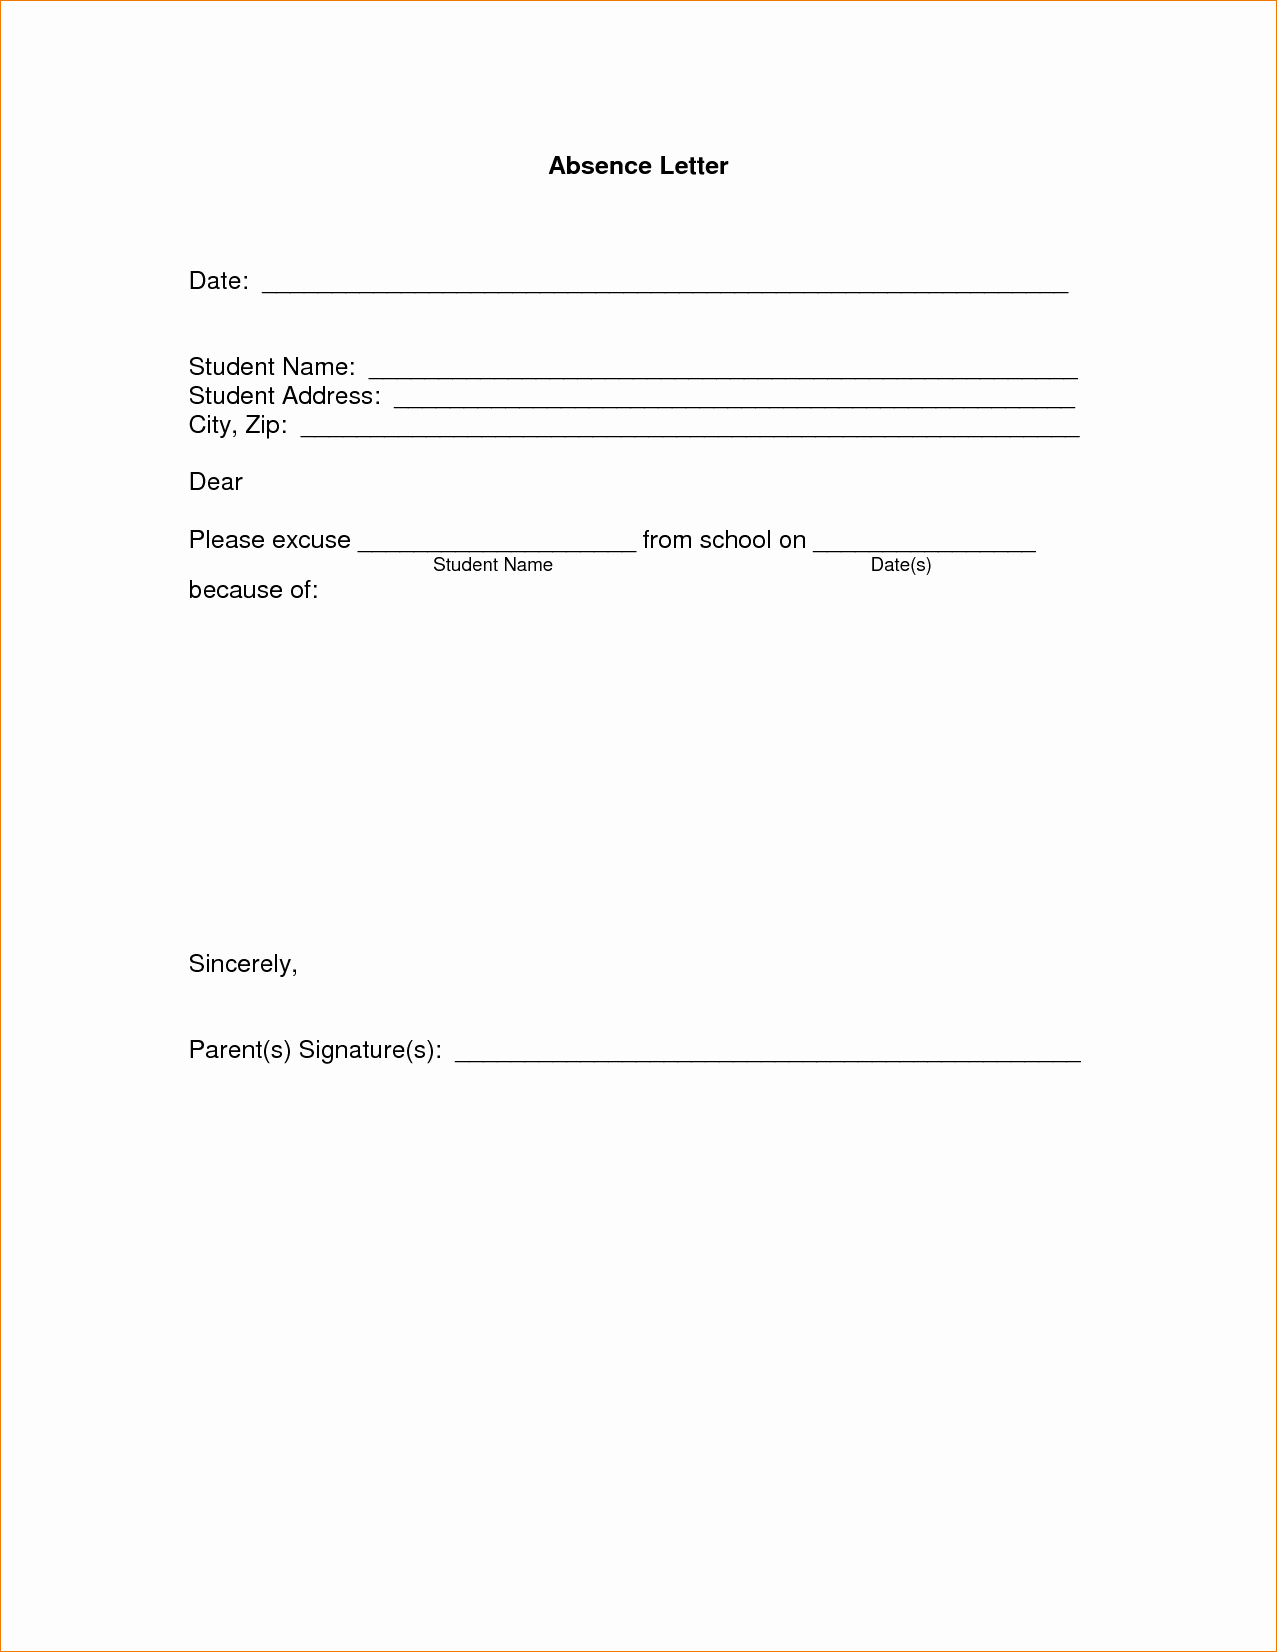 Absence Note Sample for School Elegant 11 Absence Excuse Letteragenda Template Sample